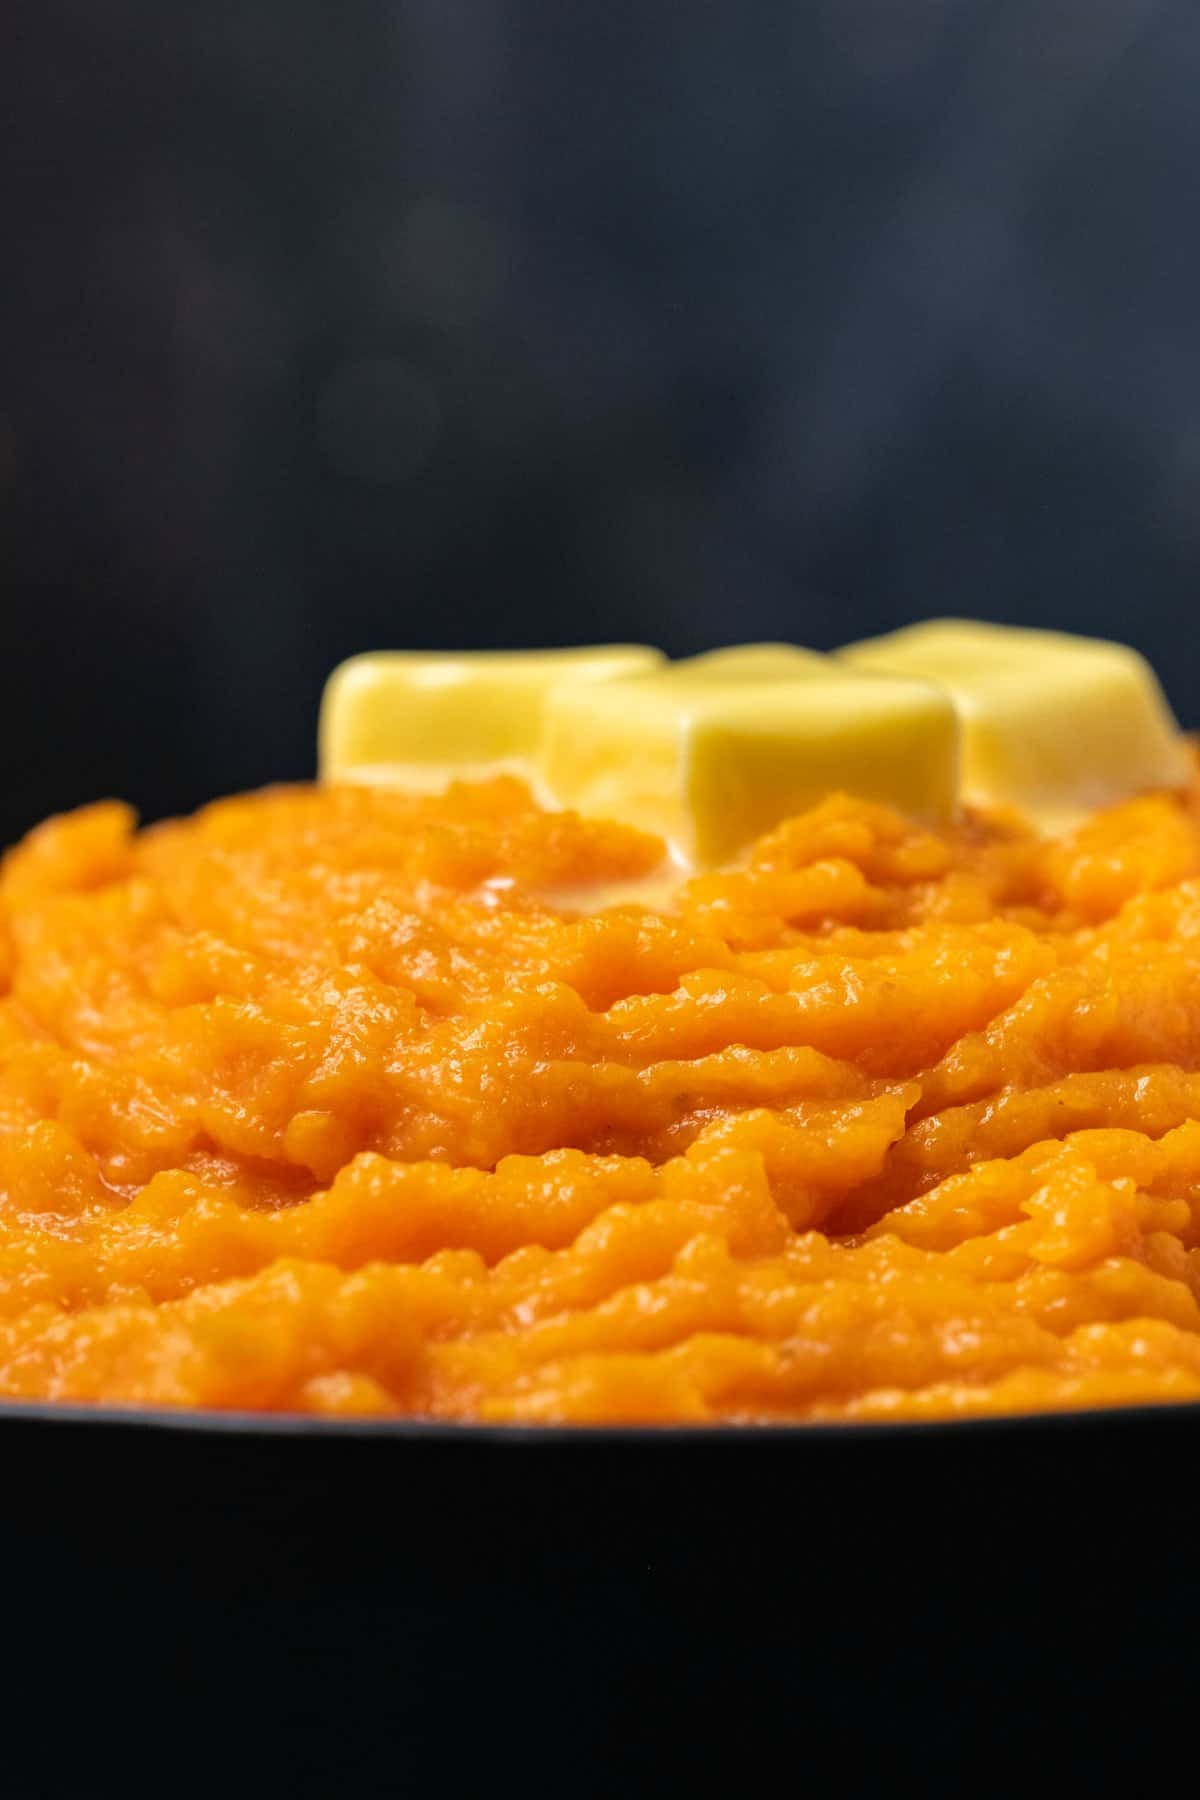 Vegan mashed sweet potatoes topped with butter in a black serving dish.